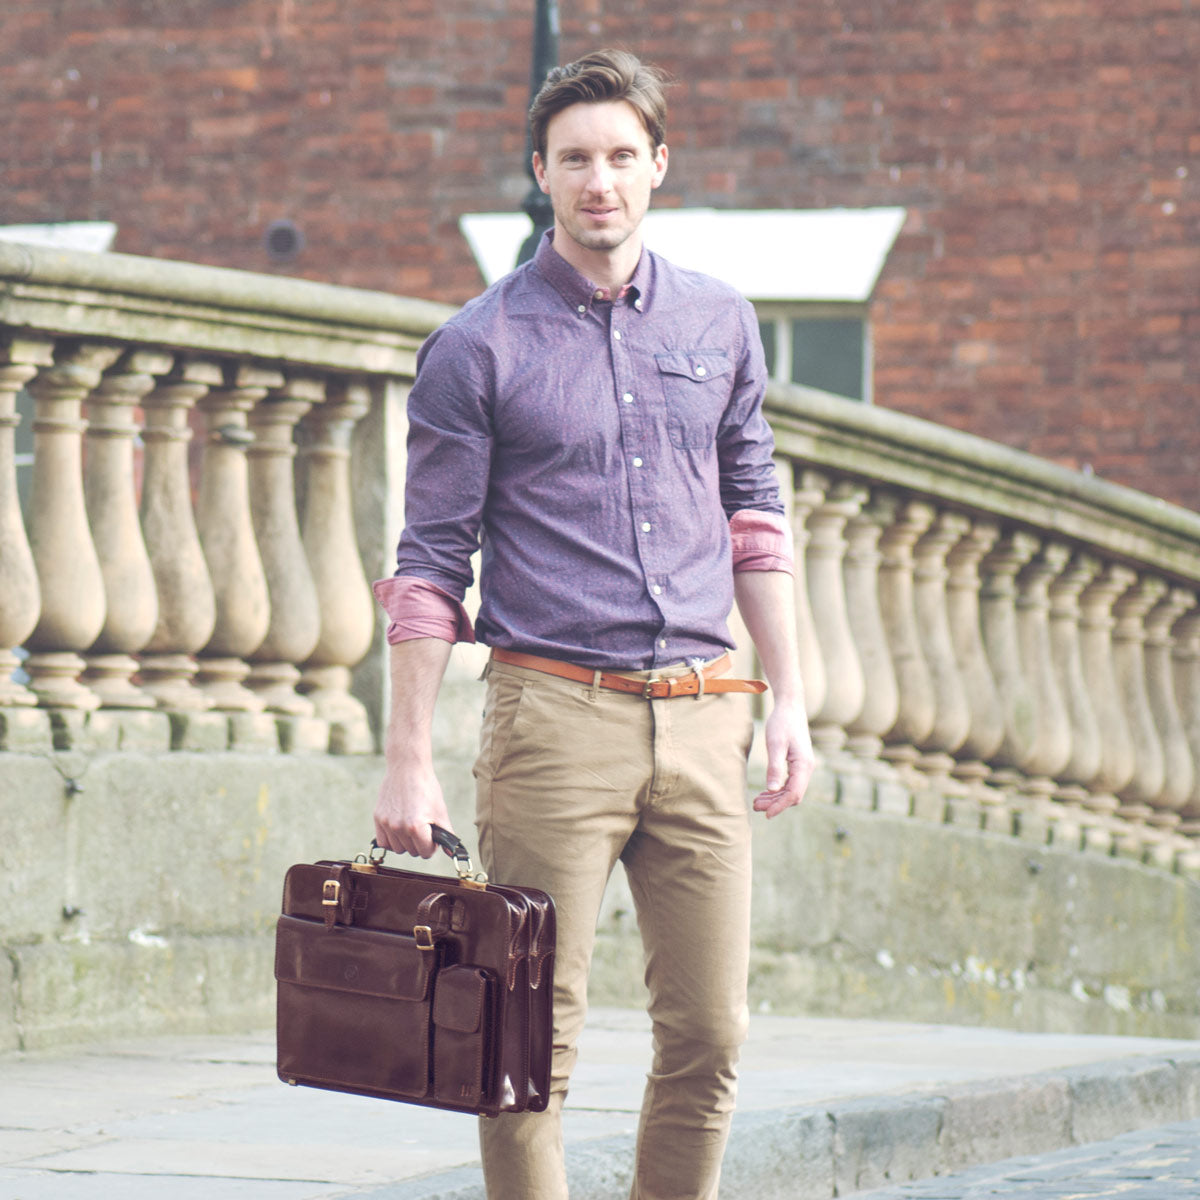 Image 8 of the 'Alanzo' Chestnut Veg-Tanned Leather Briefcase